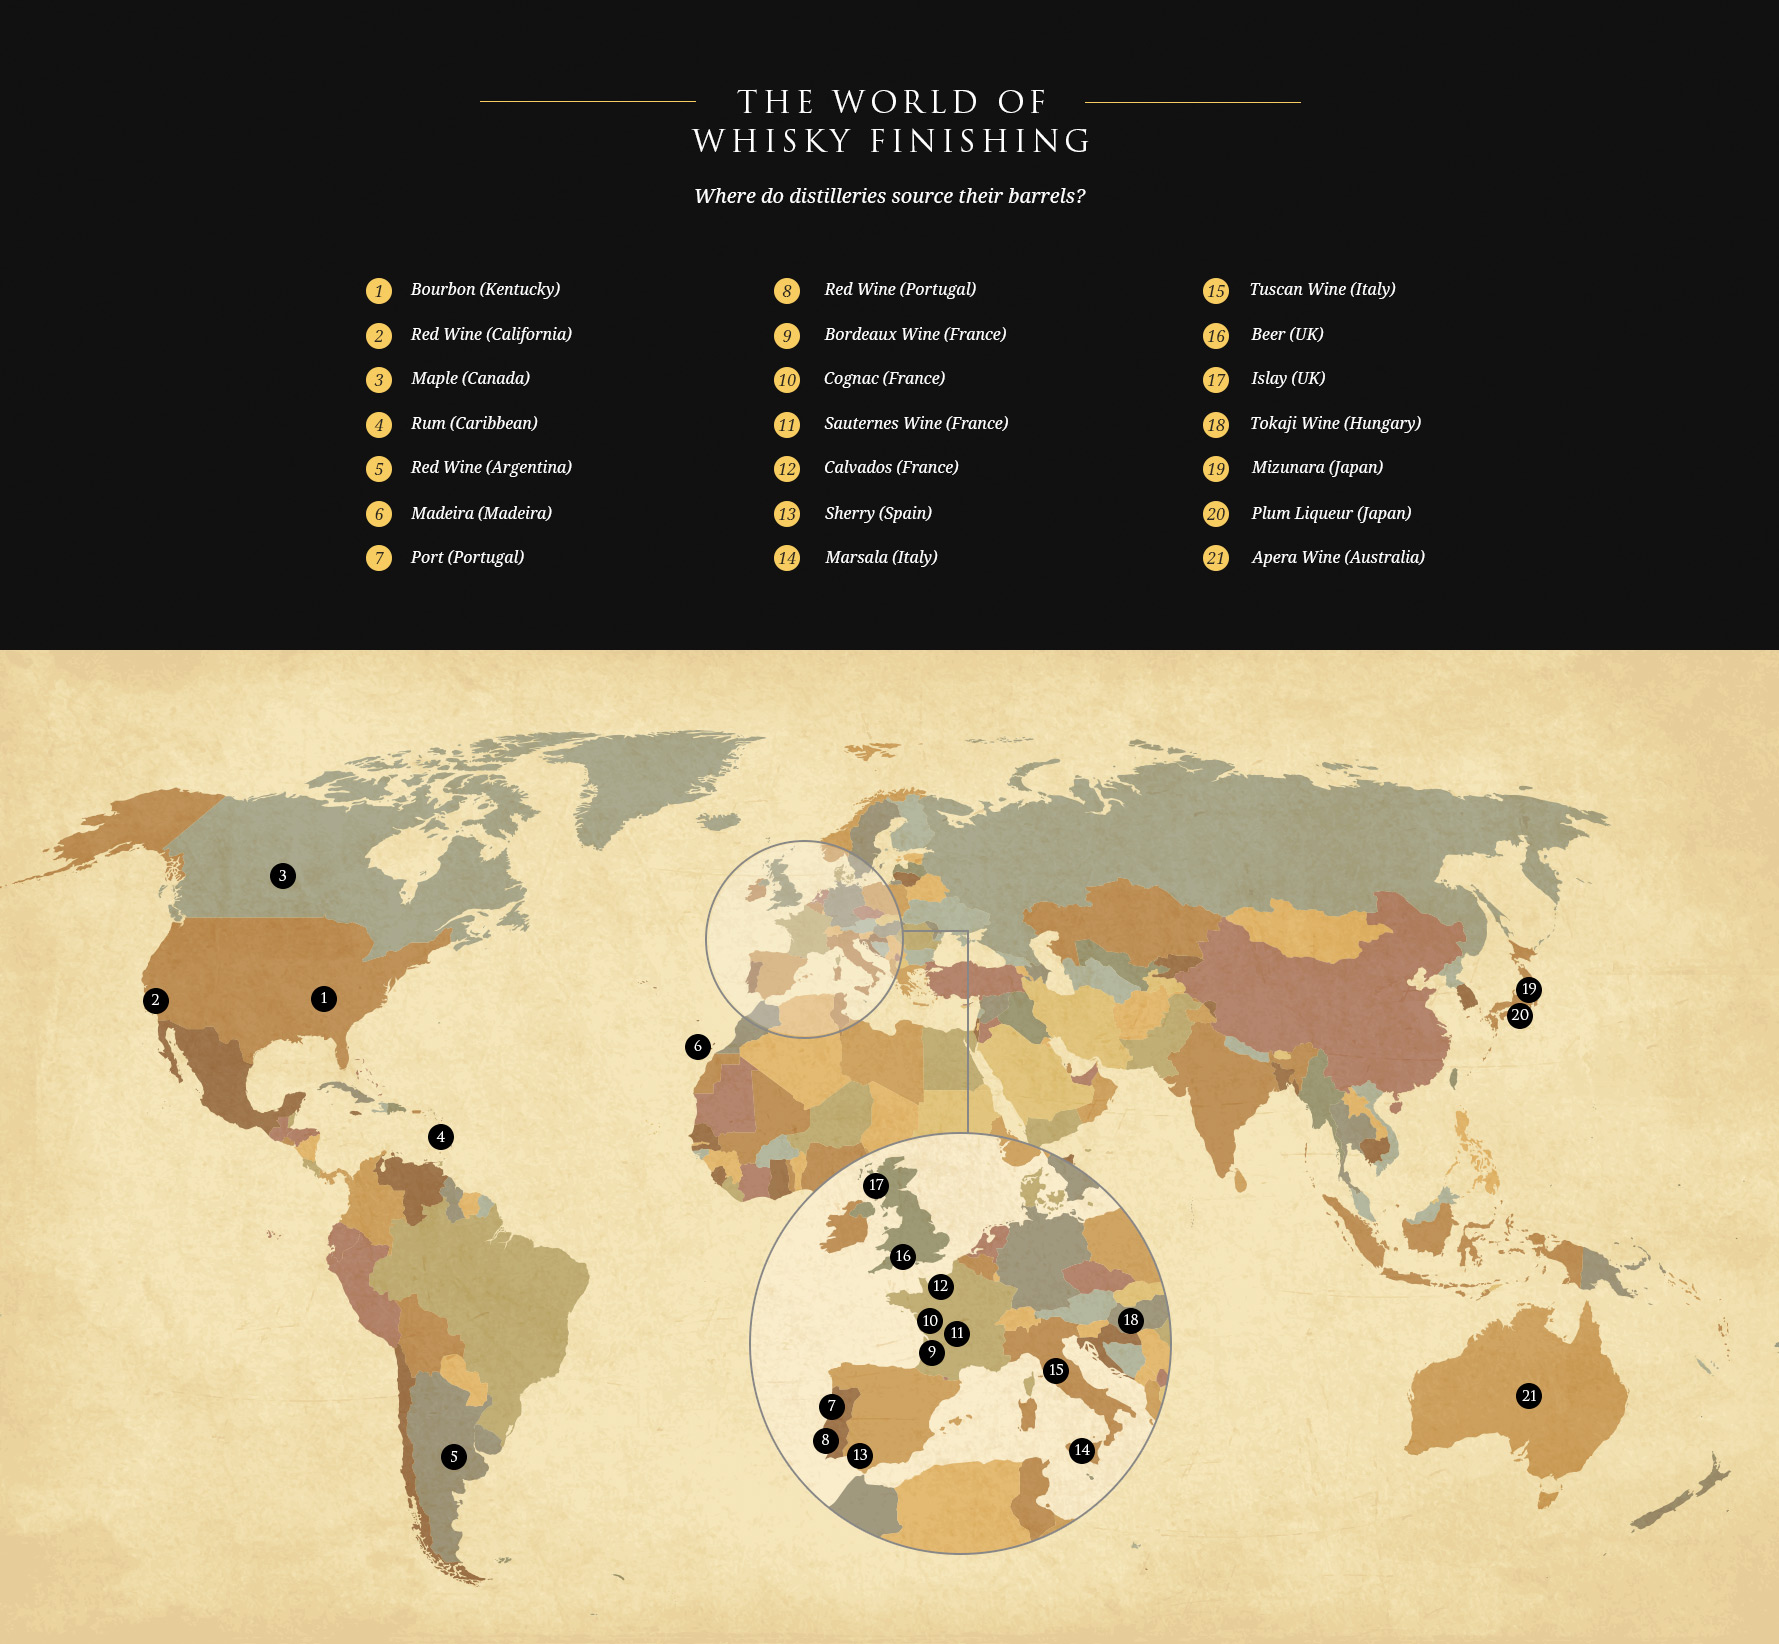 Map showing where whisky distilleries source their barrels